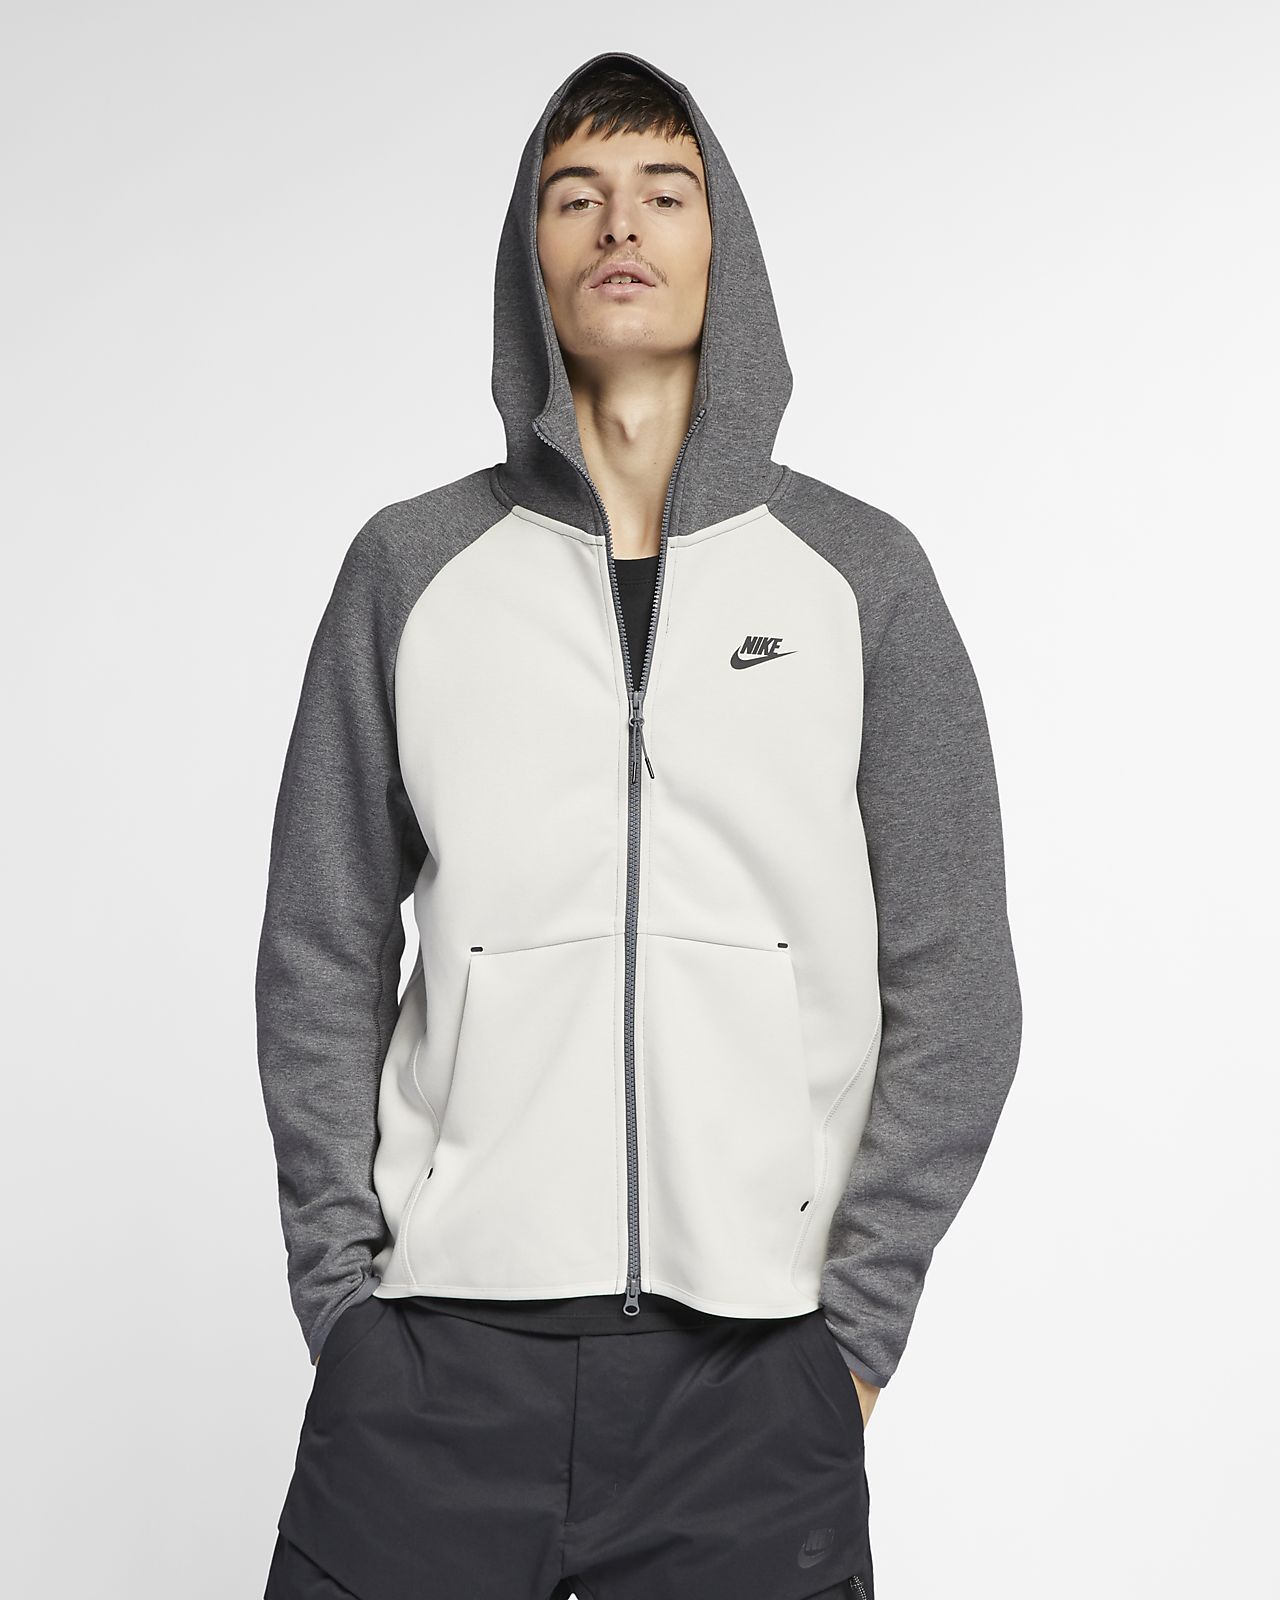 b9d2927c98f3 Nike Sportswear Tech Fleece Men s Full-Zip Hoodie. Nike.com CH